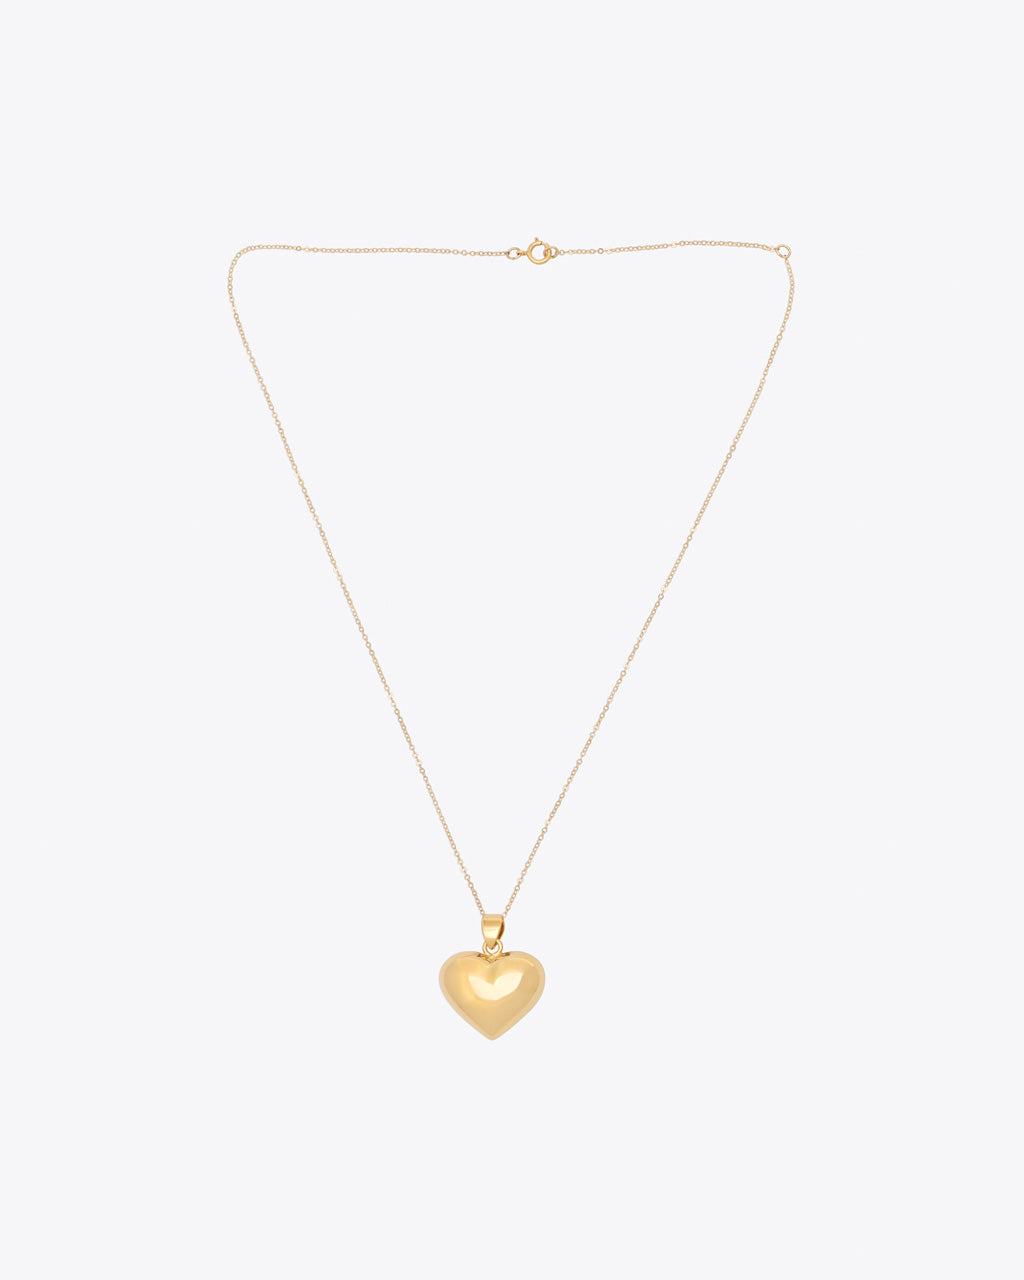 Gold heart pendant on gold chain with circle clasp